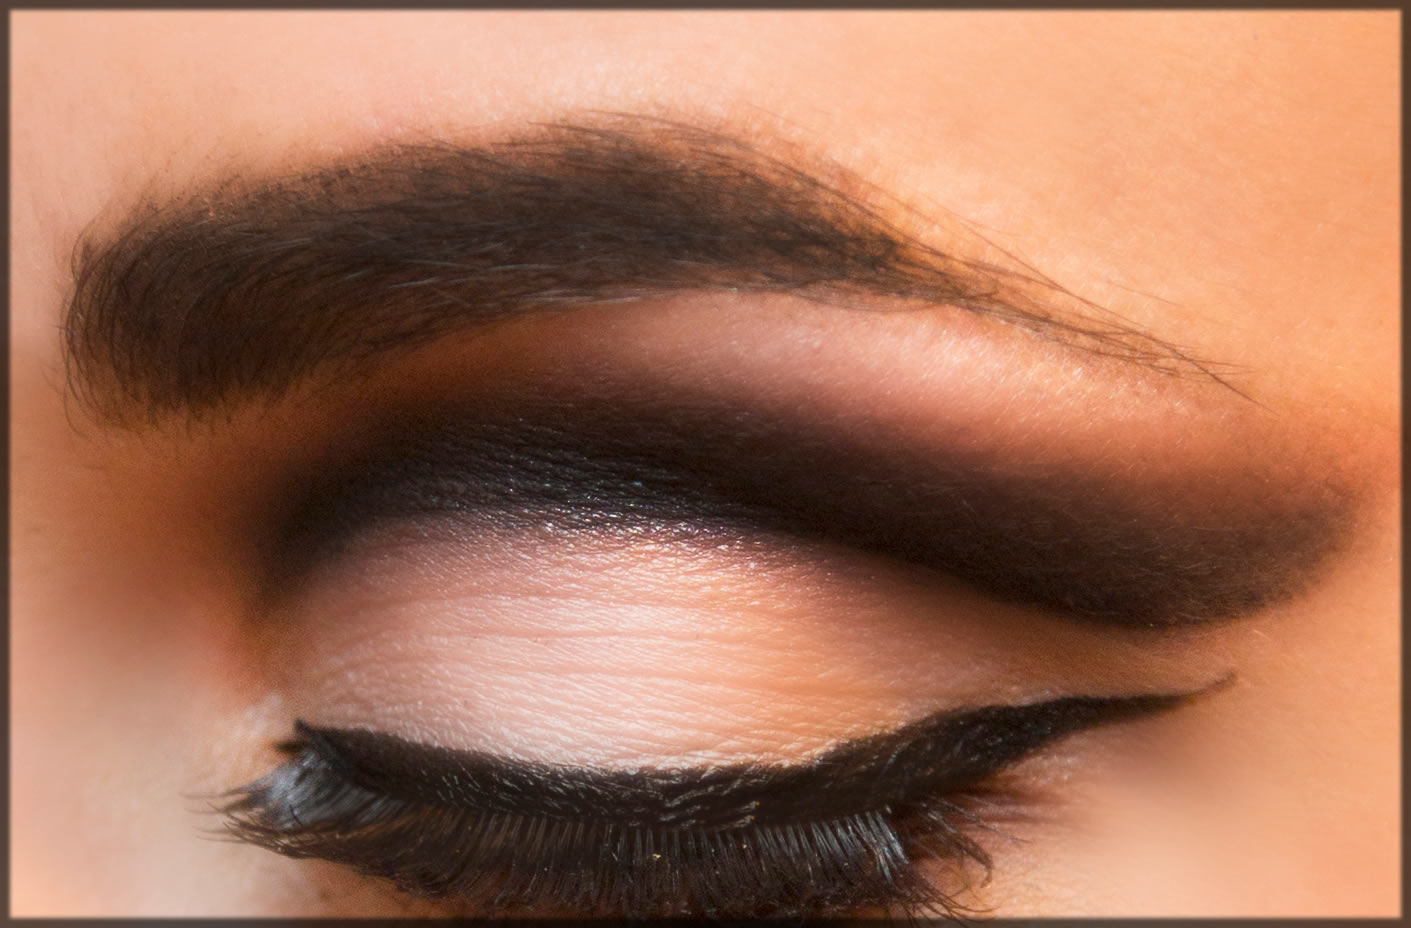 How To Do a Cut Crease Eye Makeup at Home